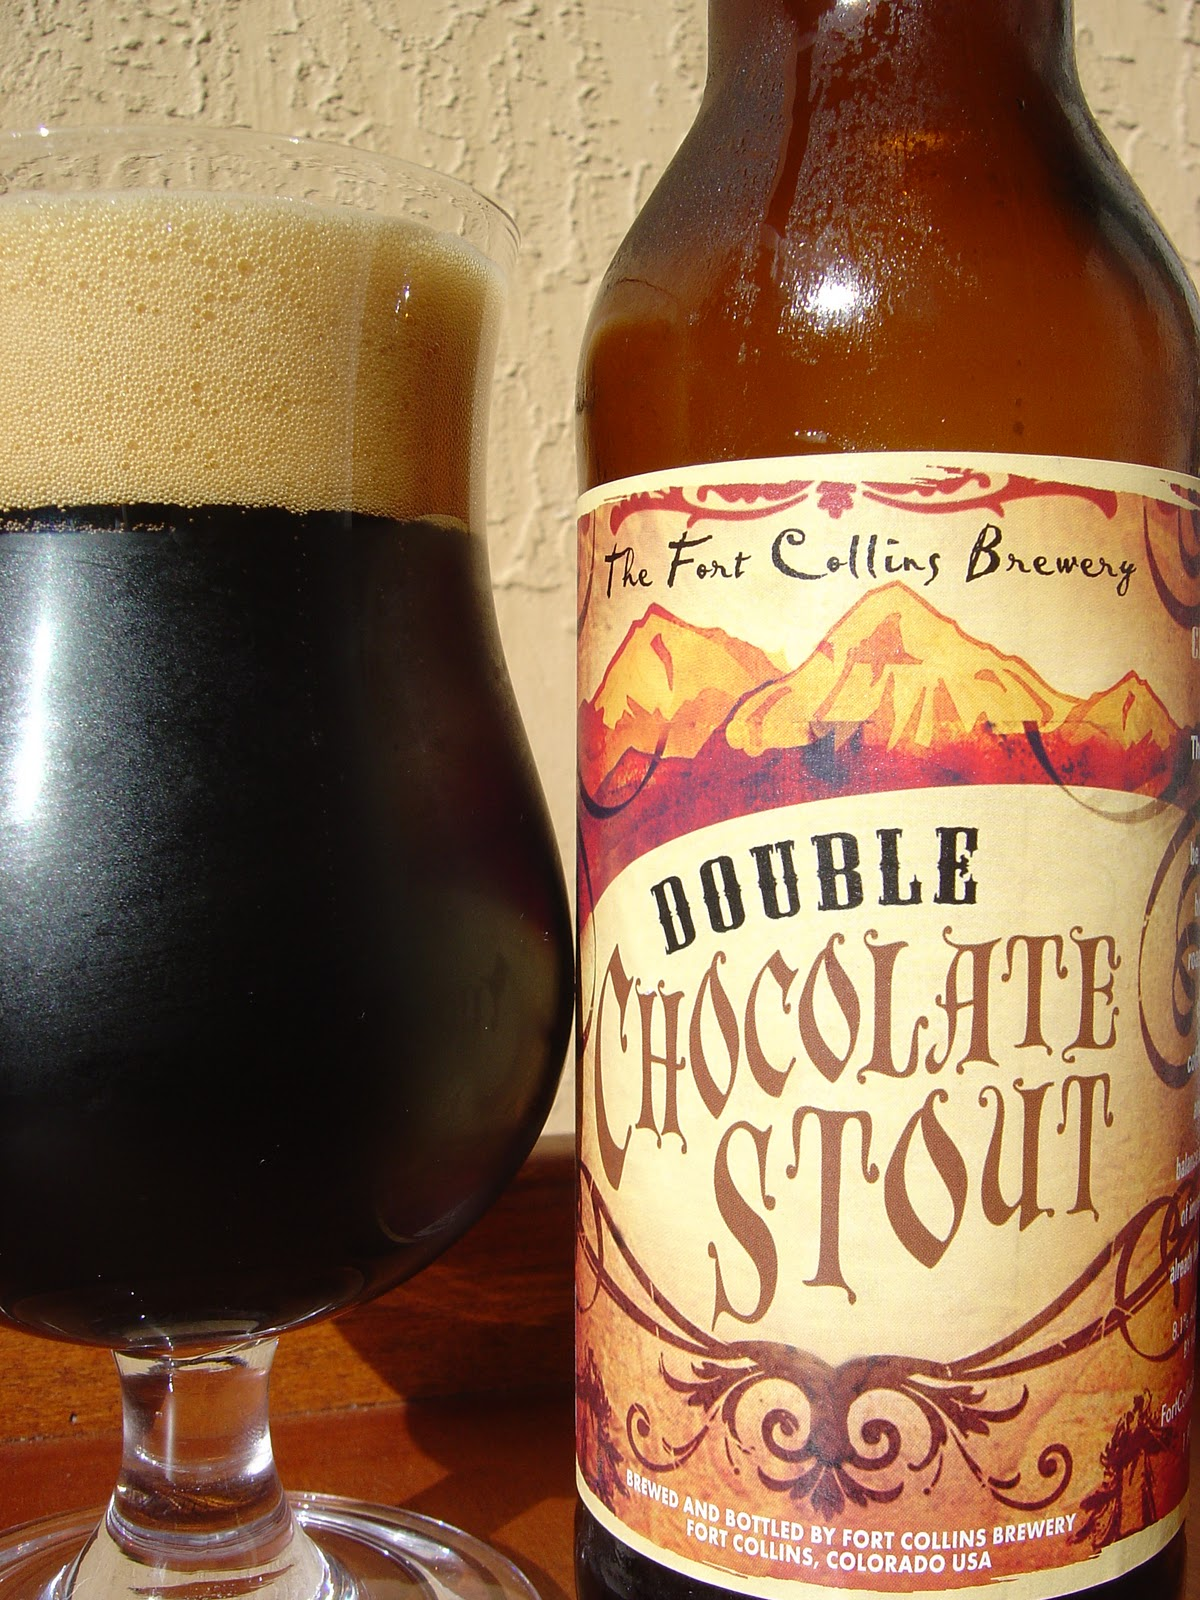 Daily Beer Review: Fort Collins Double Chocolate Stout